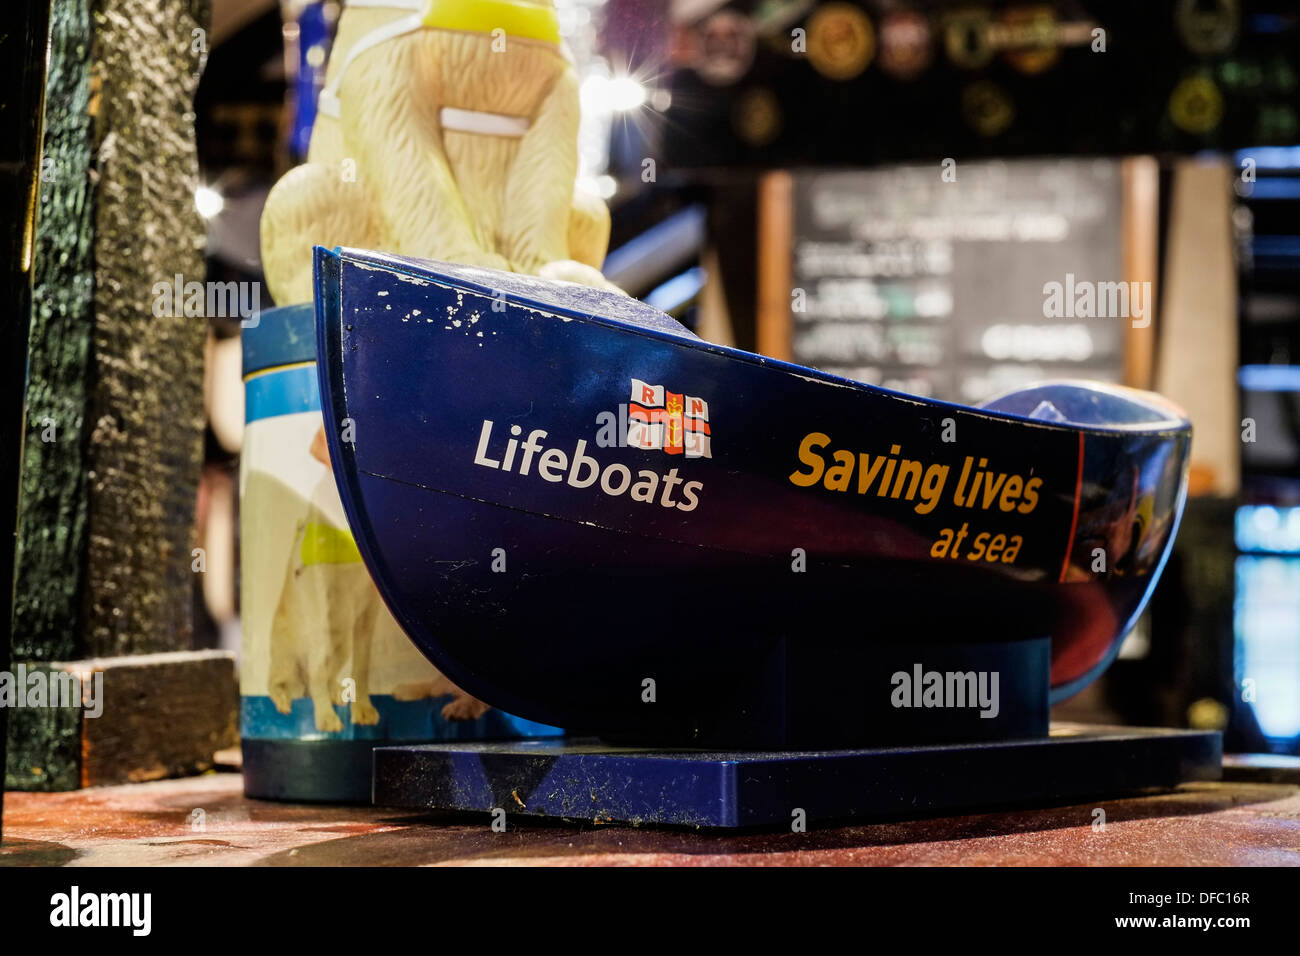 A RNLI Charity collecting box. - Stock Image